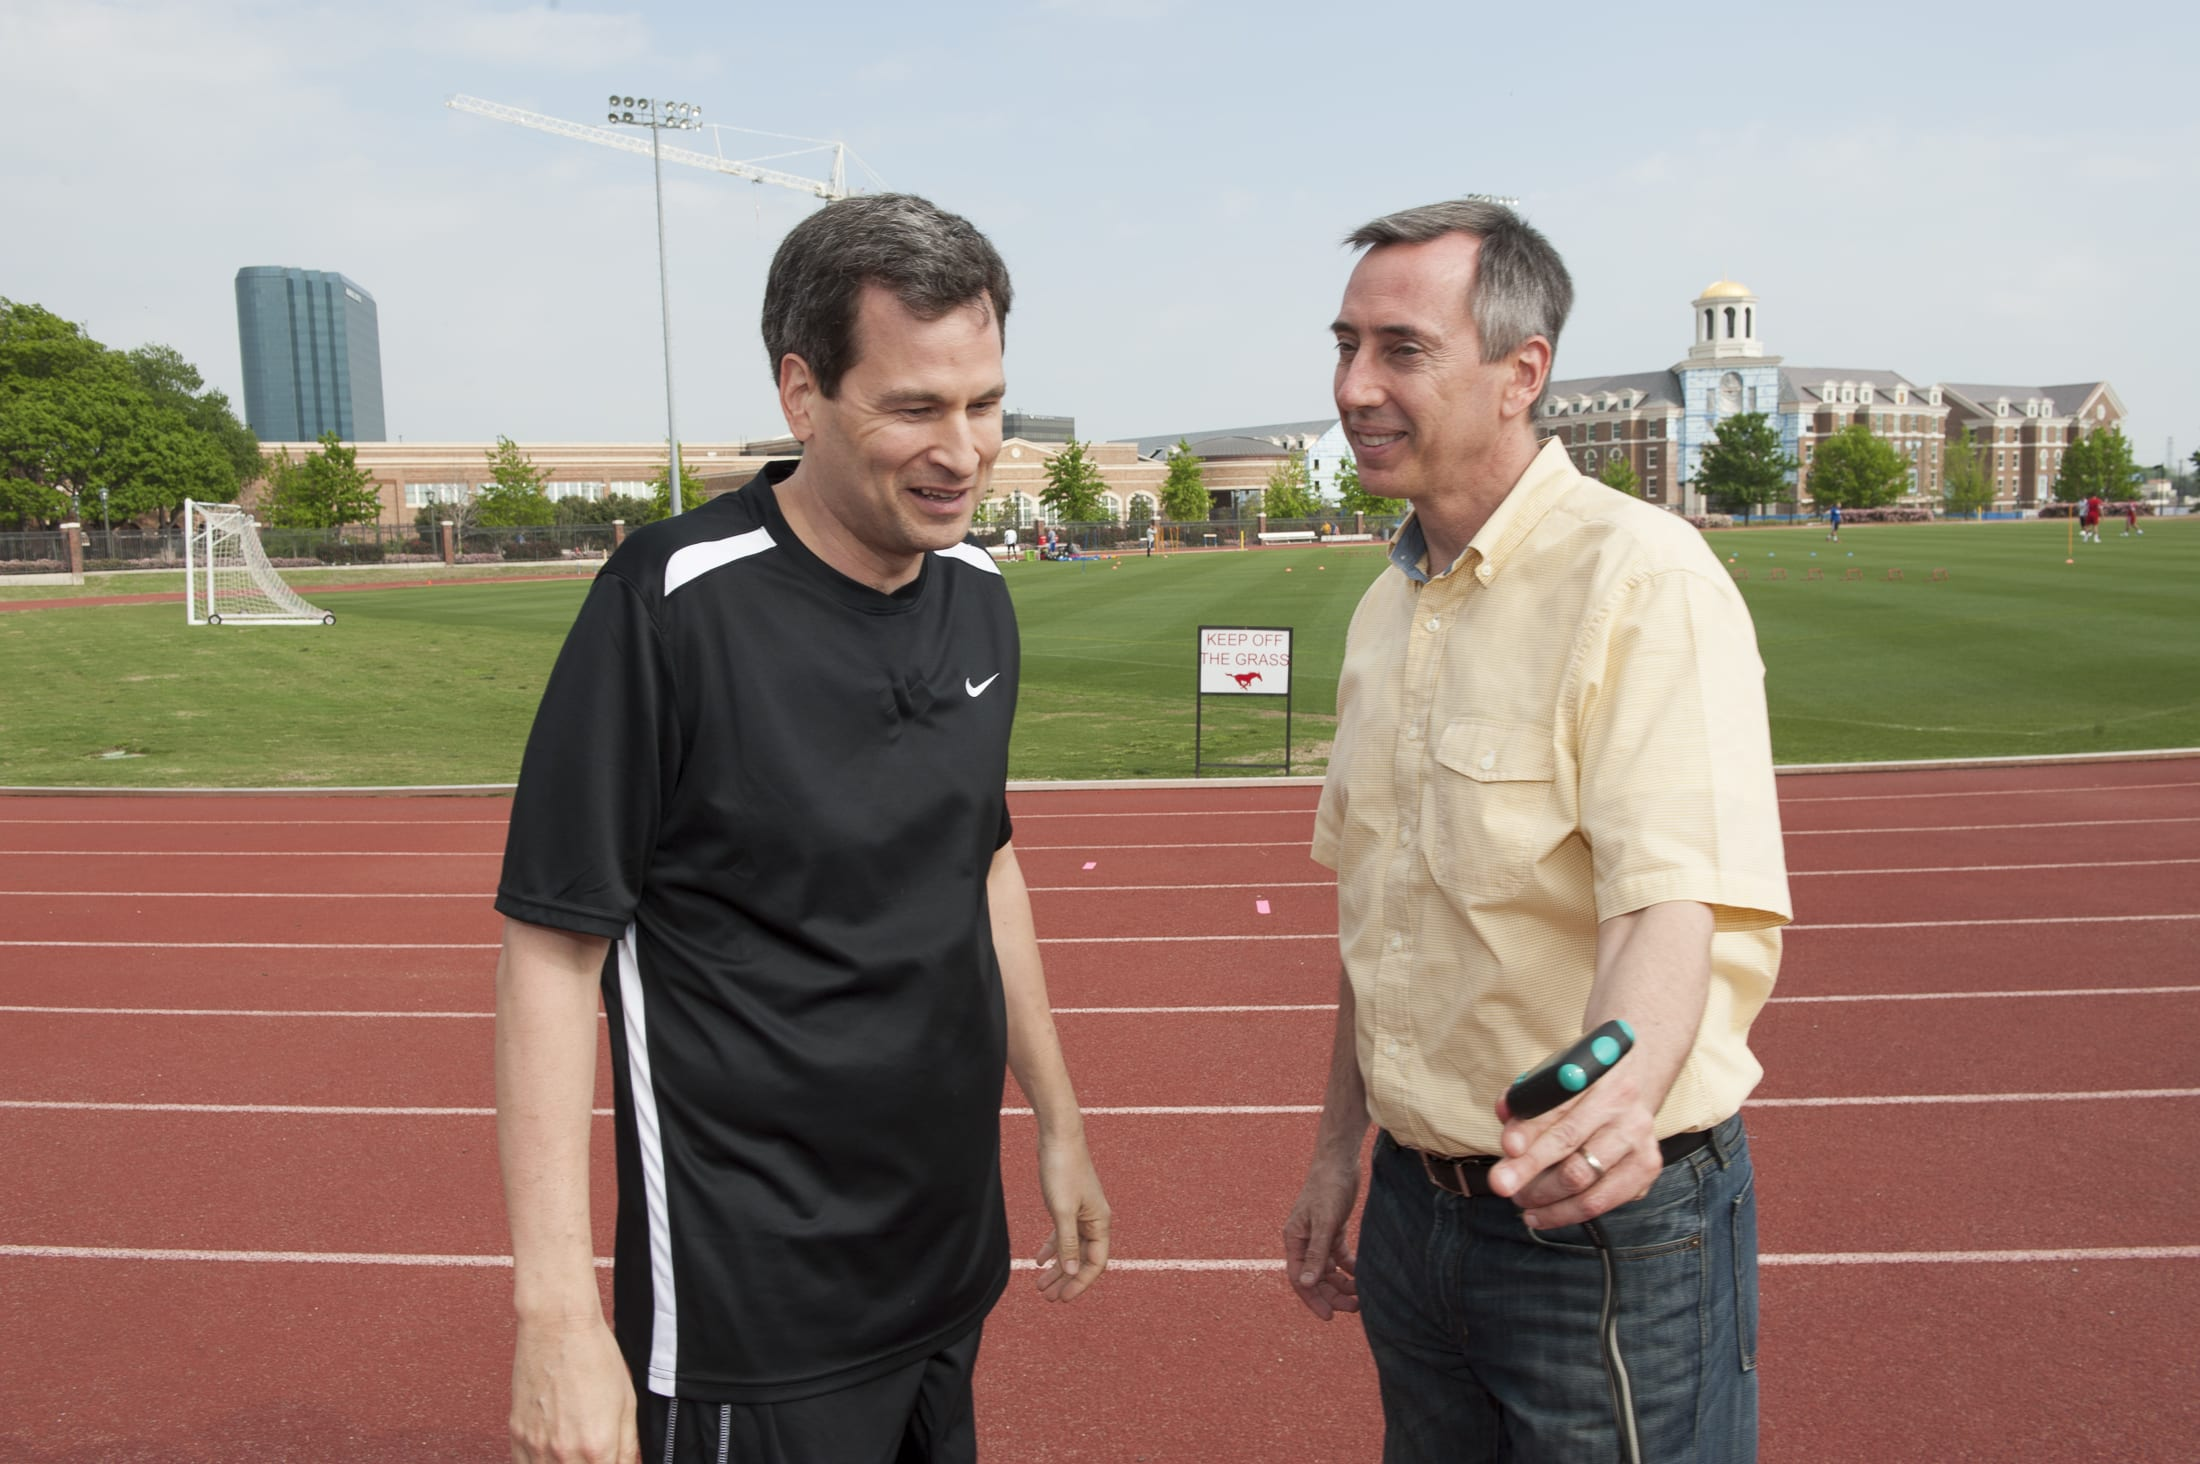 Peter Weyand (right) trackside at SMU